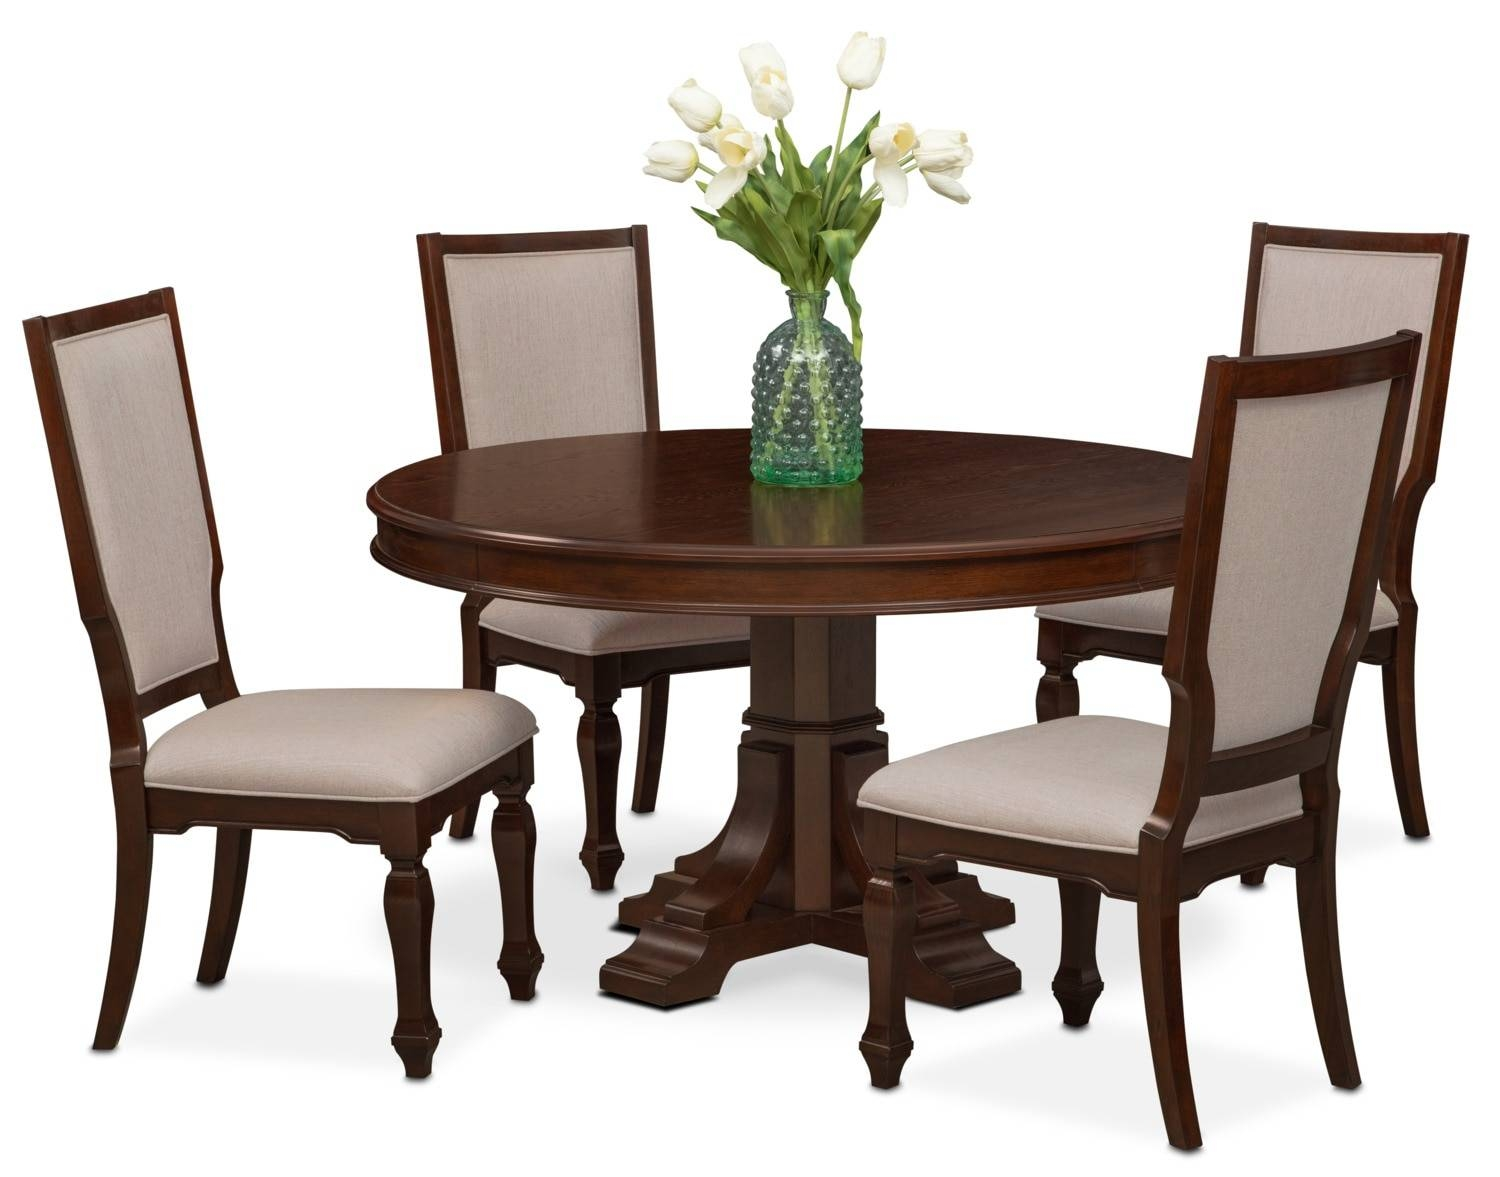 Shop Dining Room Furniture | Value City Furniture | Value City pertaining to Sofas For Kitchen Diner (Image 21 of 30)